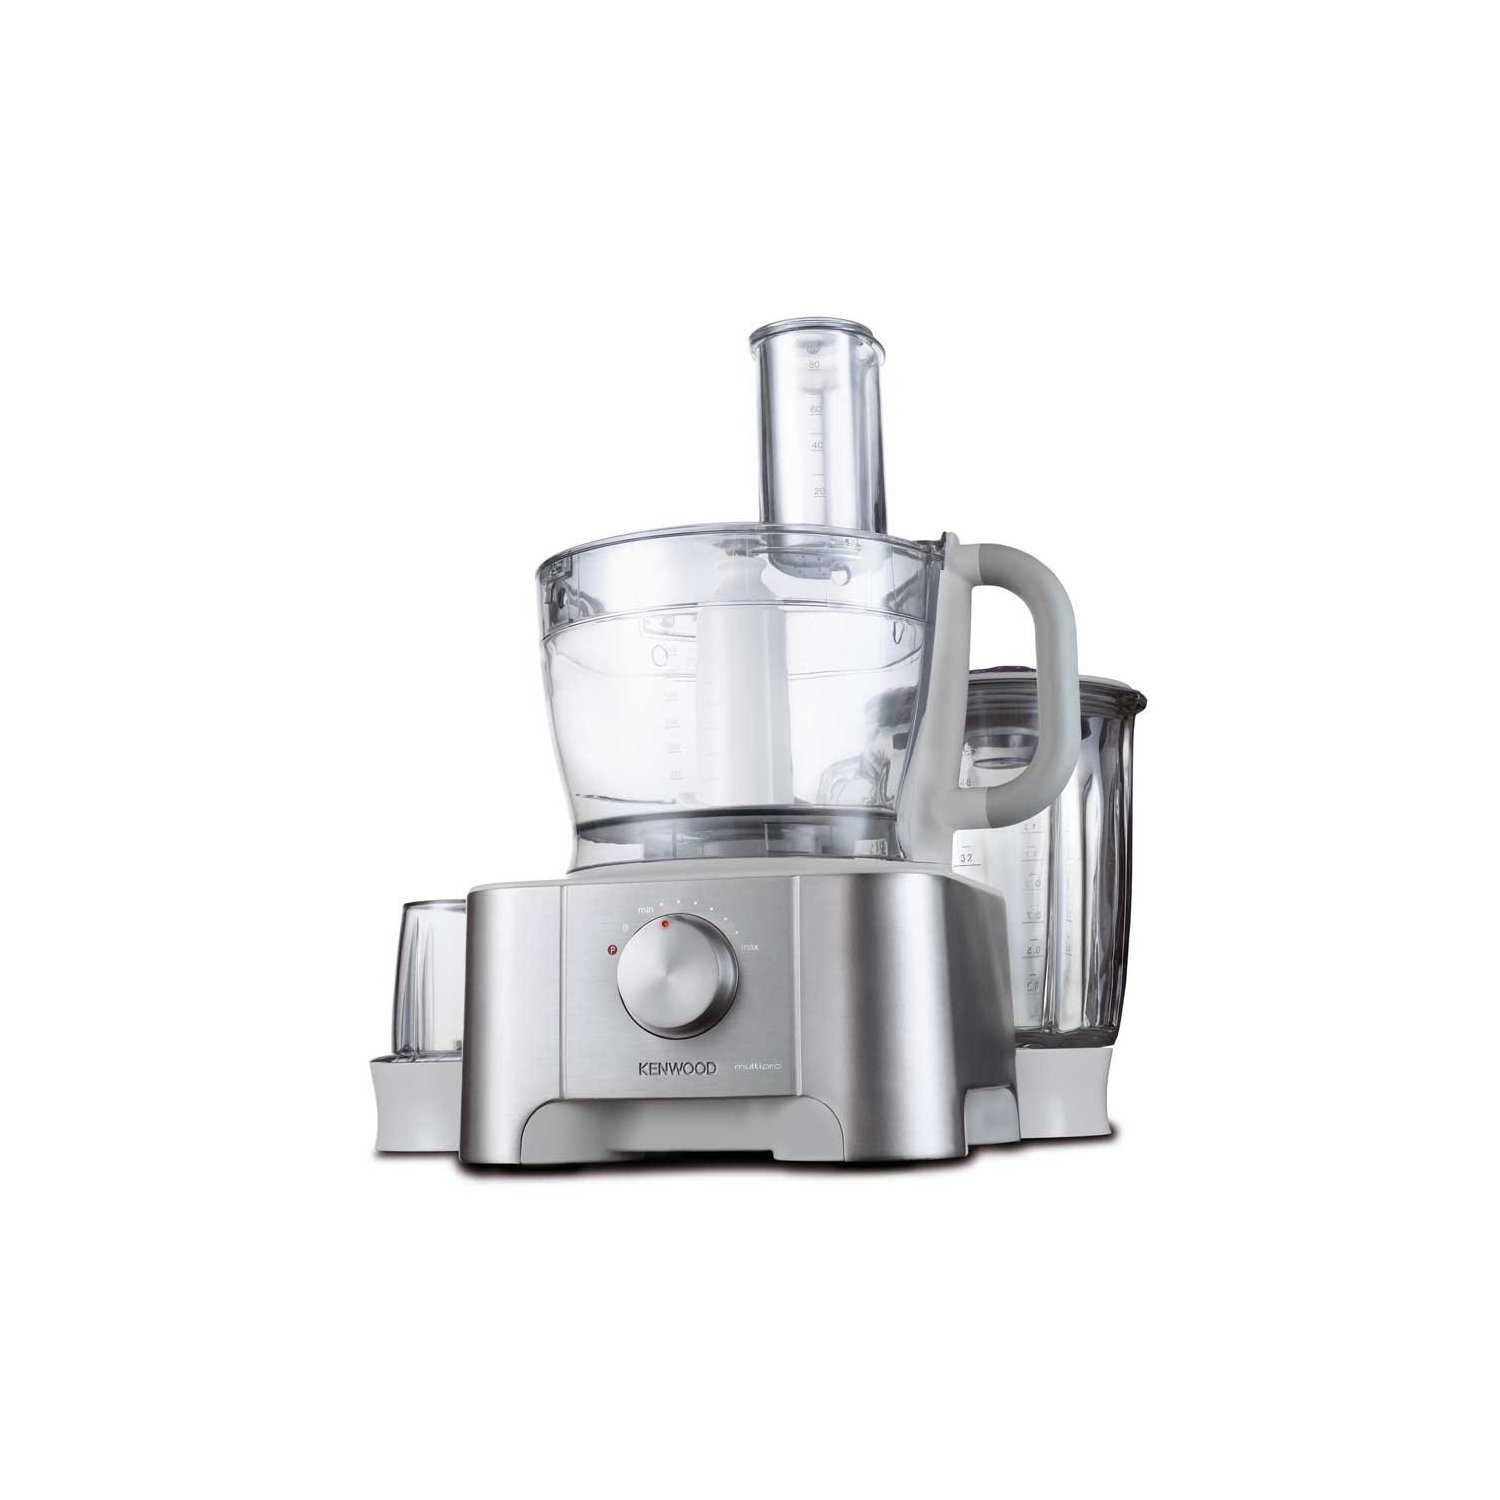 kenwood fp920 food processor review